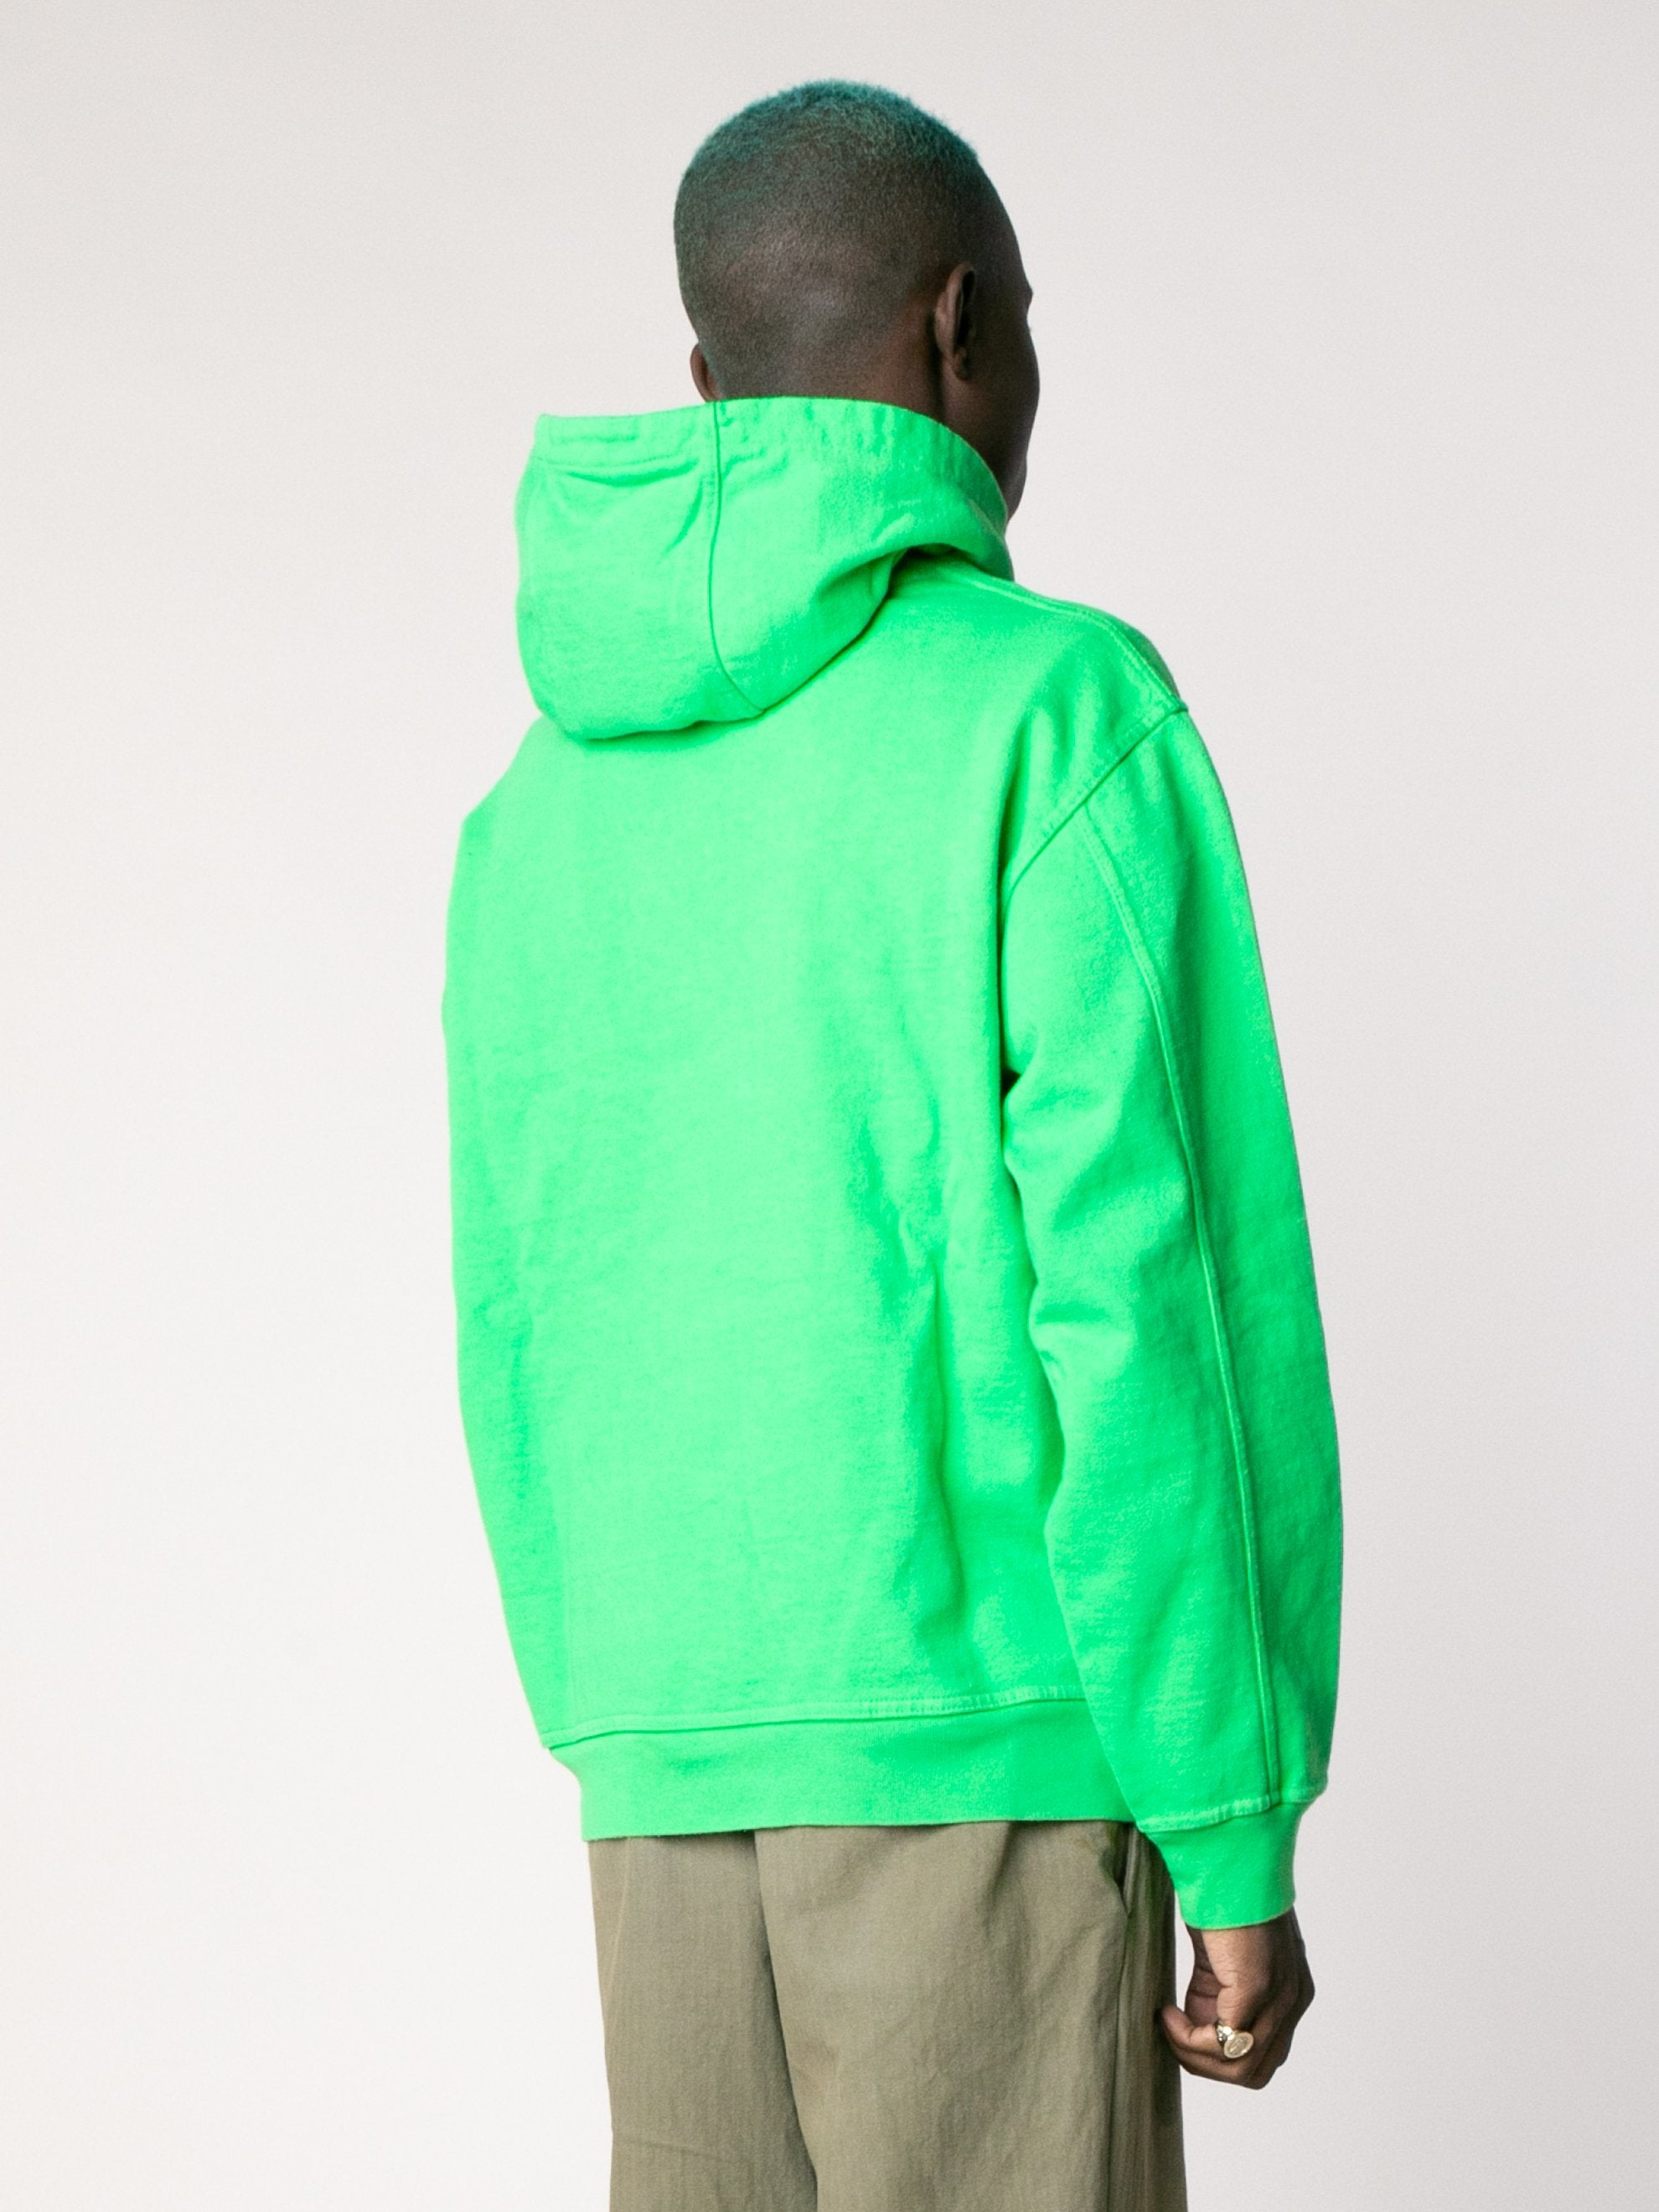 Kelly Green Embroidered Graffiti Hoodie 5